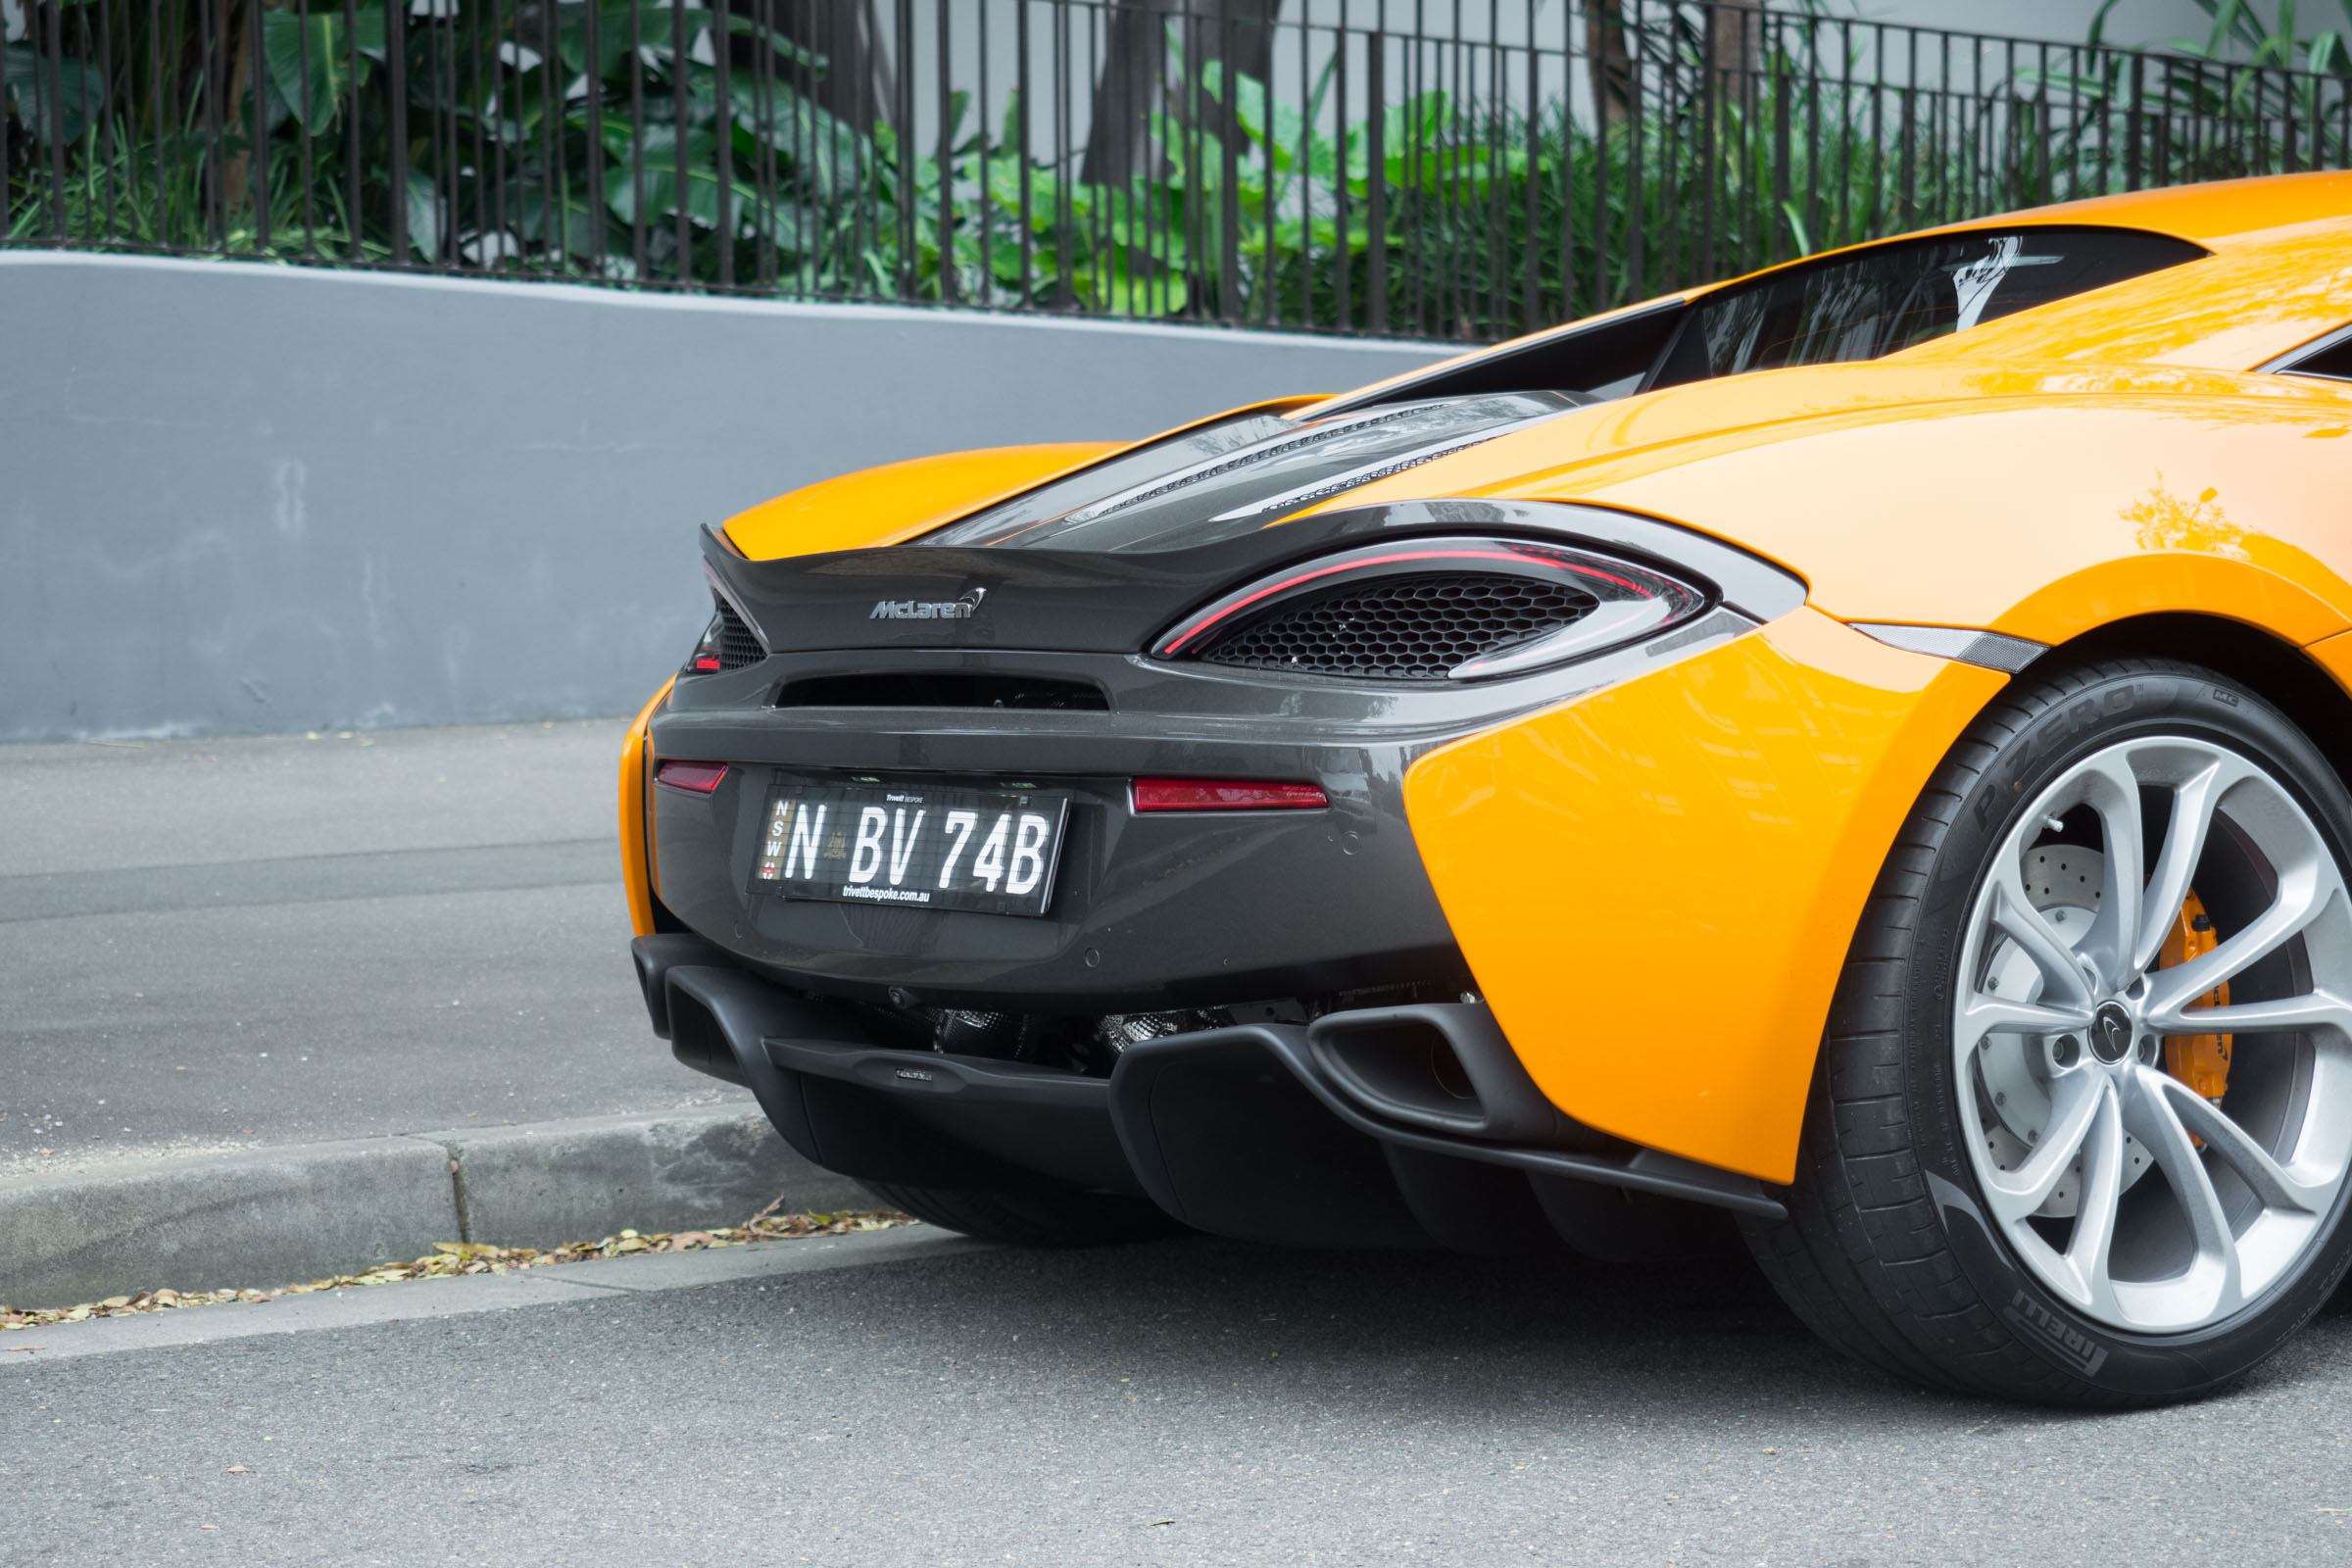 McLaren 540C Review Australia | Hey GentsMcLaren 540C Review Australia | Hey Gents